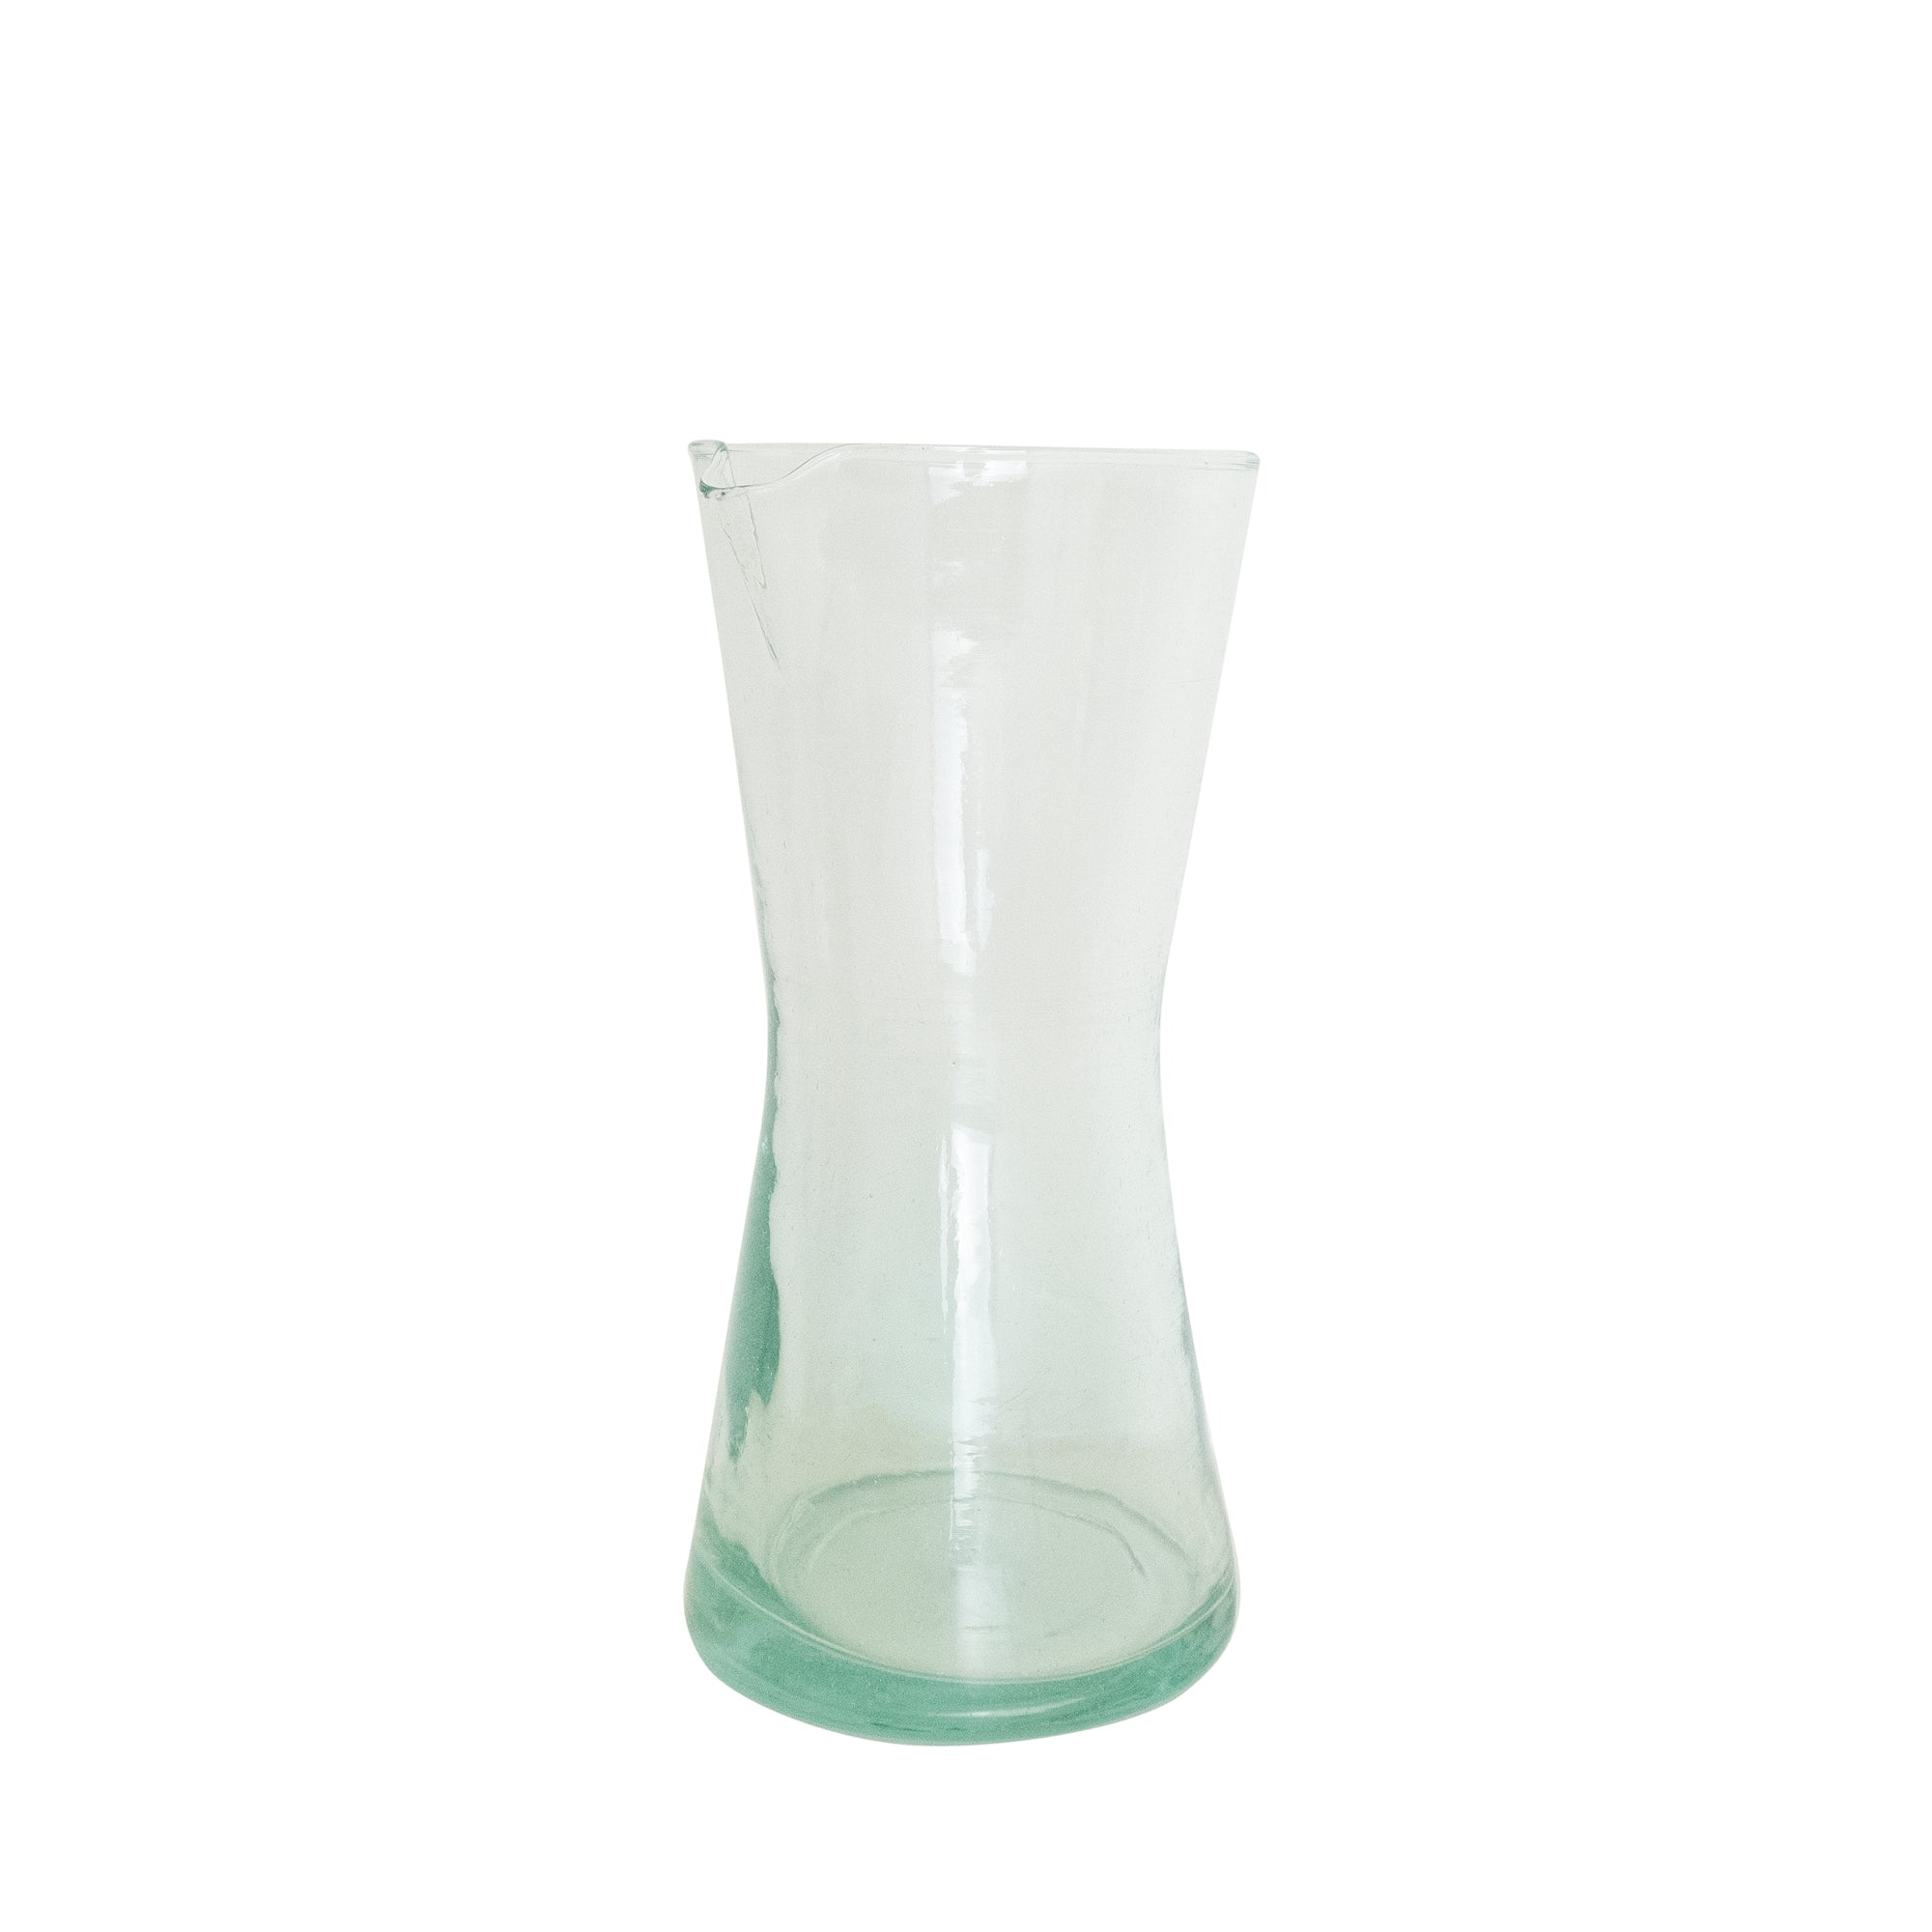 Beldi Glass Flared Carafe - Tall